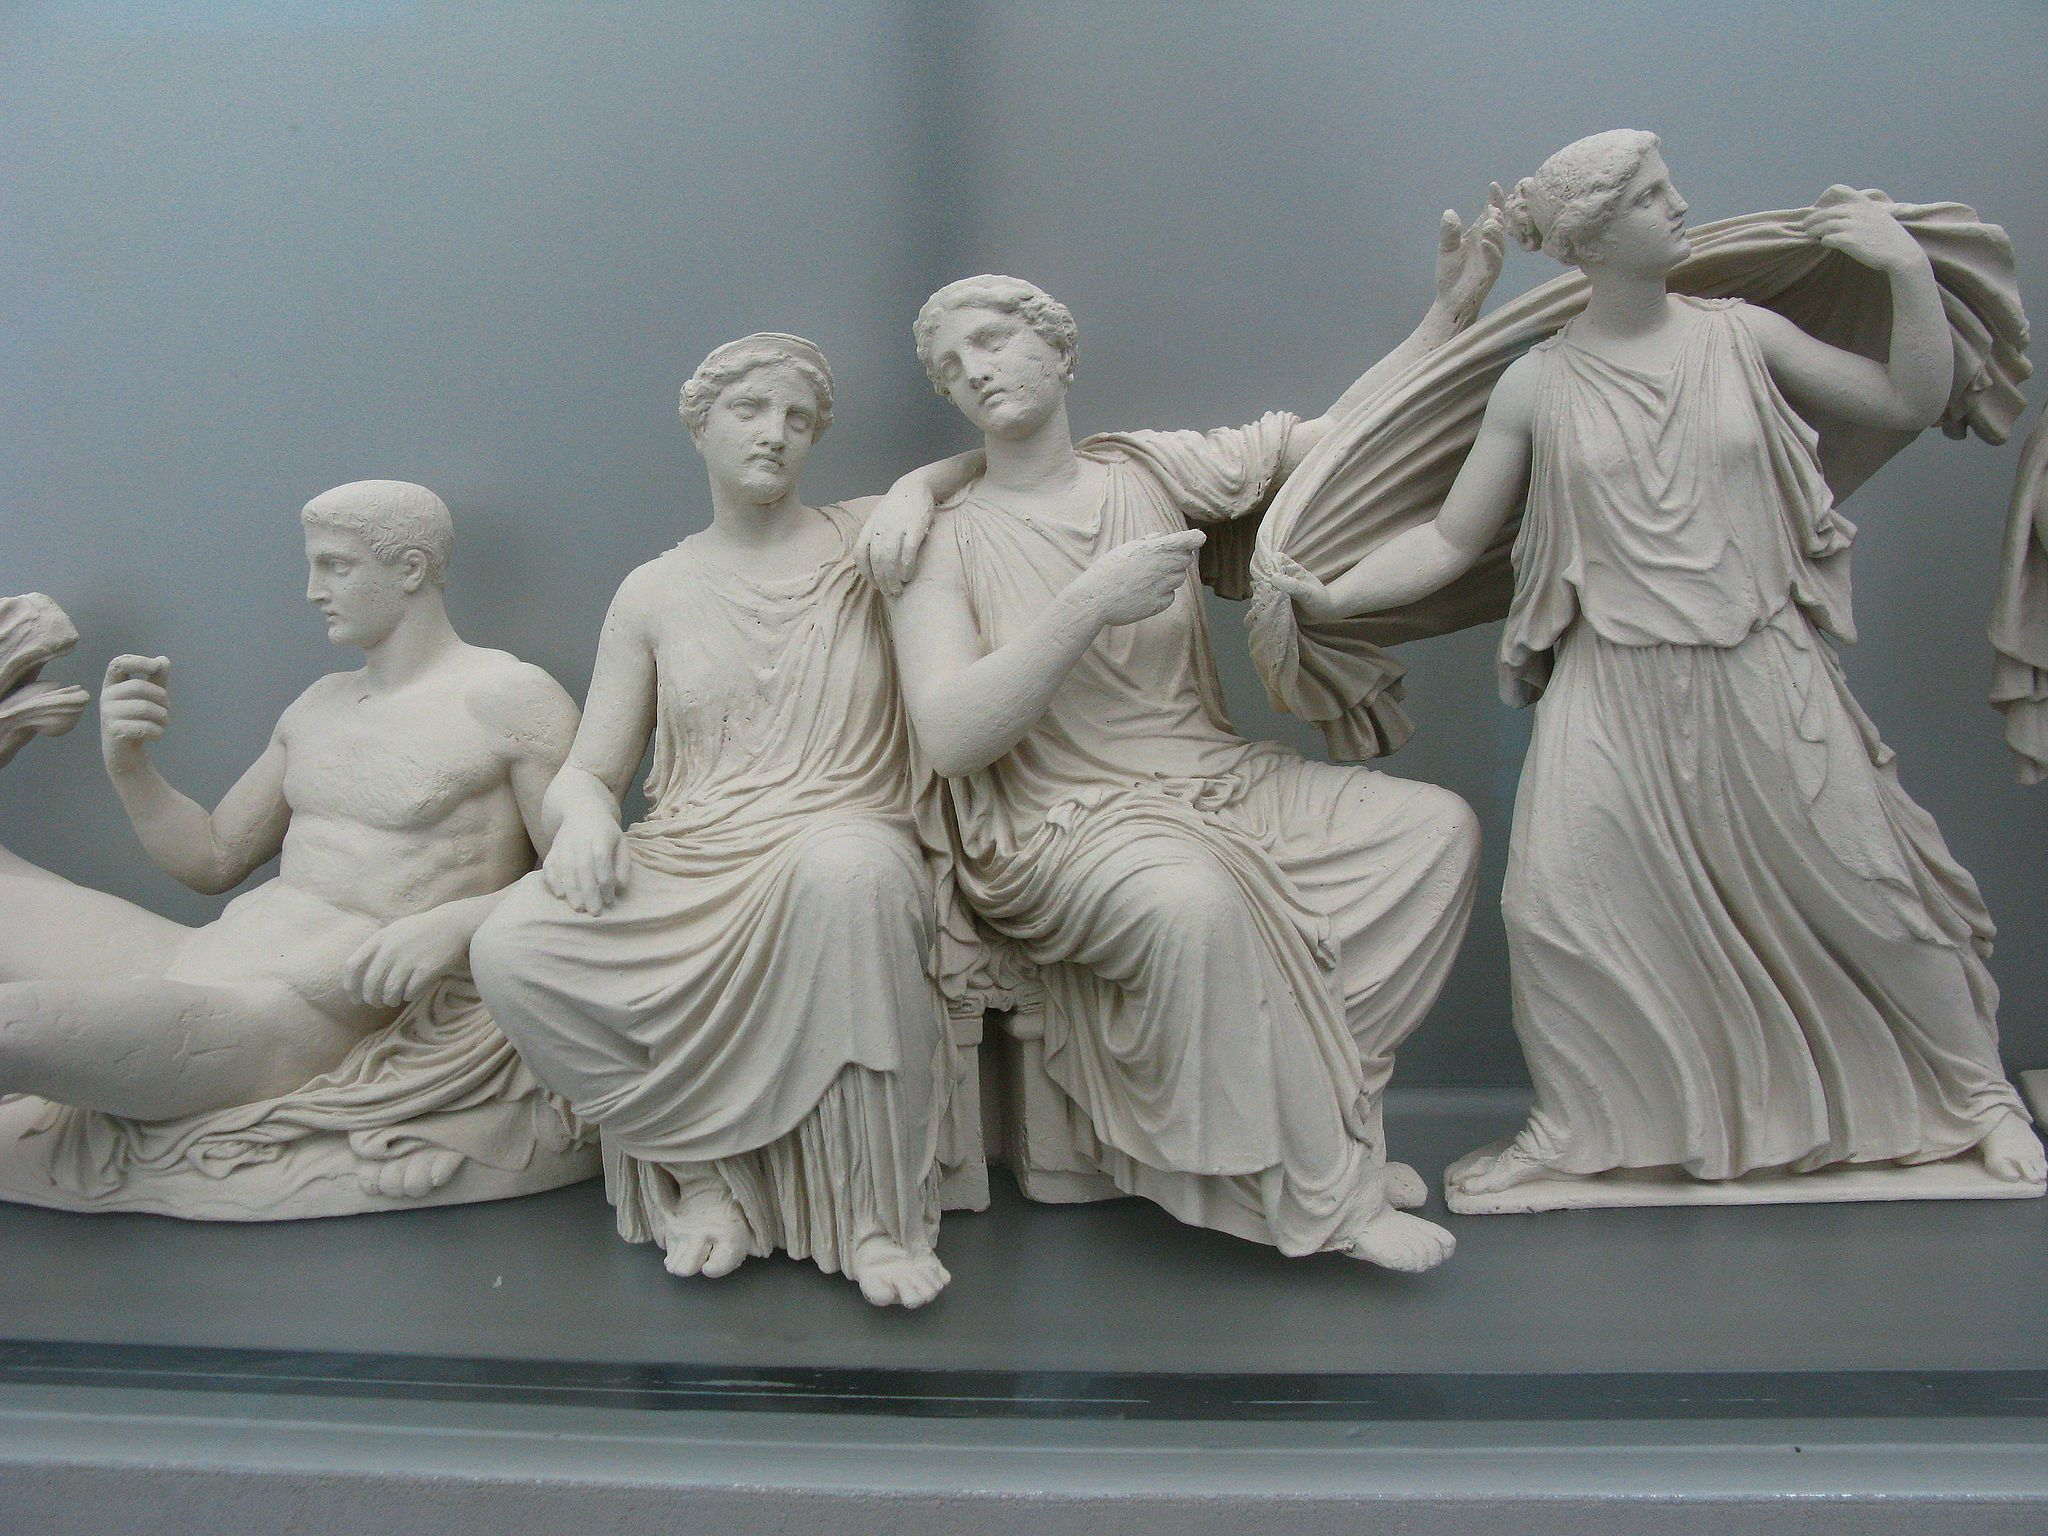 Reconstruction of the east pediment of the Parthenon 3